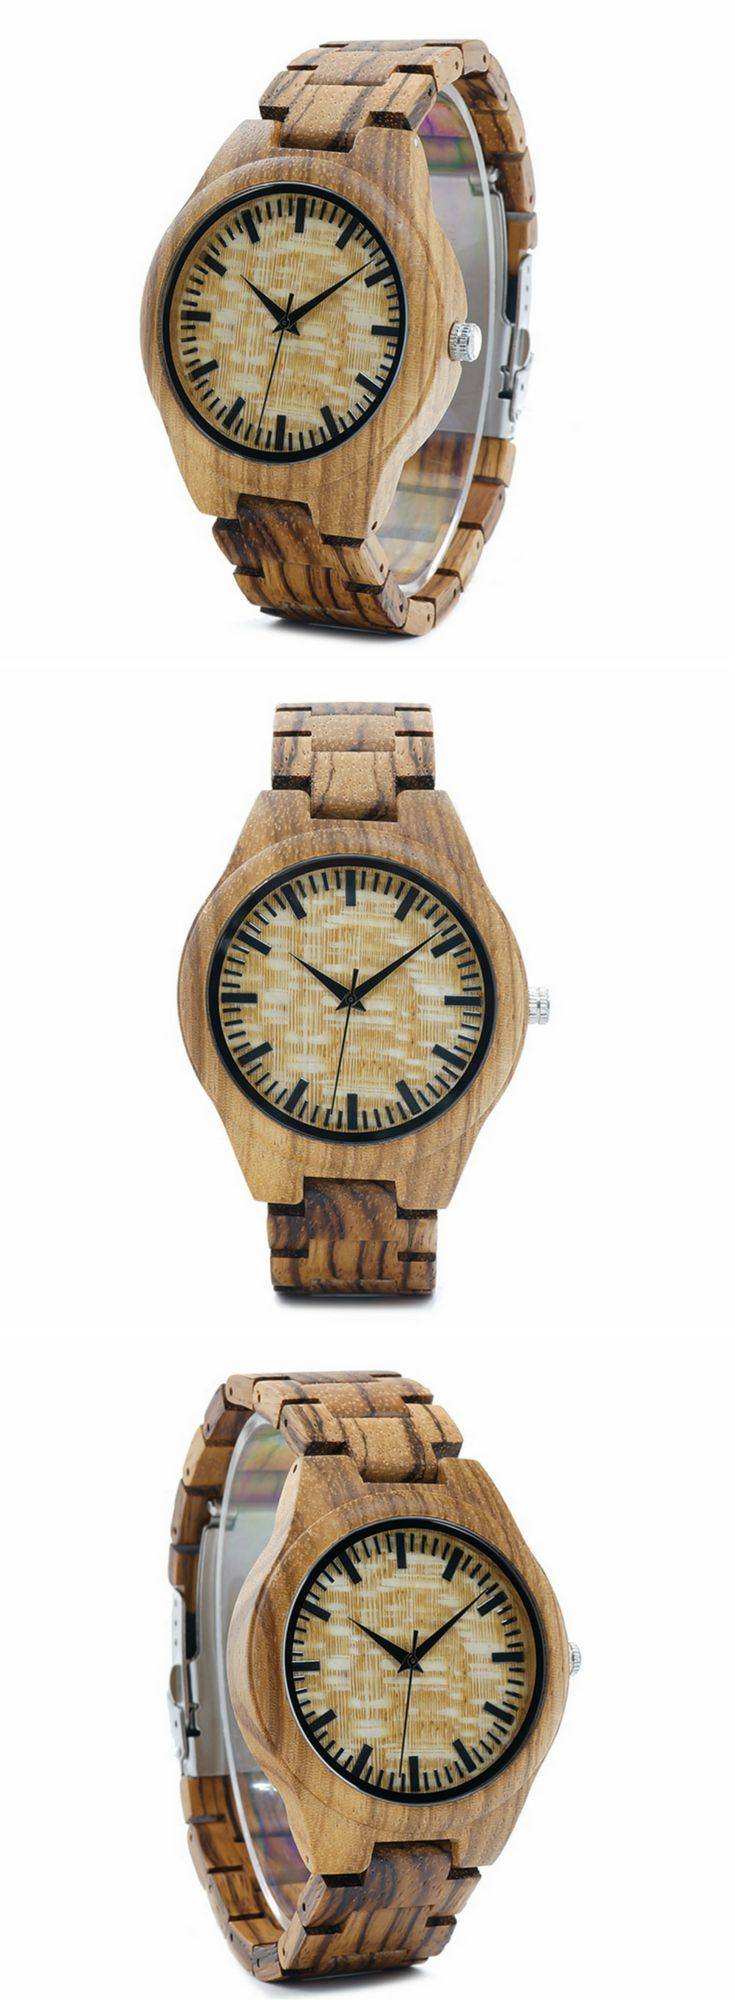 Beautiful men's watch made from premium zebra wood | www.arborcouture.com | men's watch affordable, men's watches affordable, men's watches under $200, men's watch under $200, watch for men affordable, watches for men affordable, affordable watch, affordable watch for men, affordable watch collection, affordable watches, affordable watches for men, affordable watches for men casual, affordable watches for men gift, affordable watches mens | #menswatches